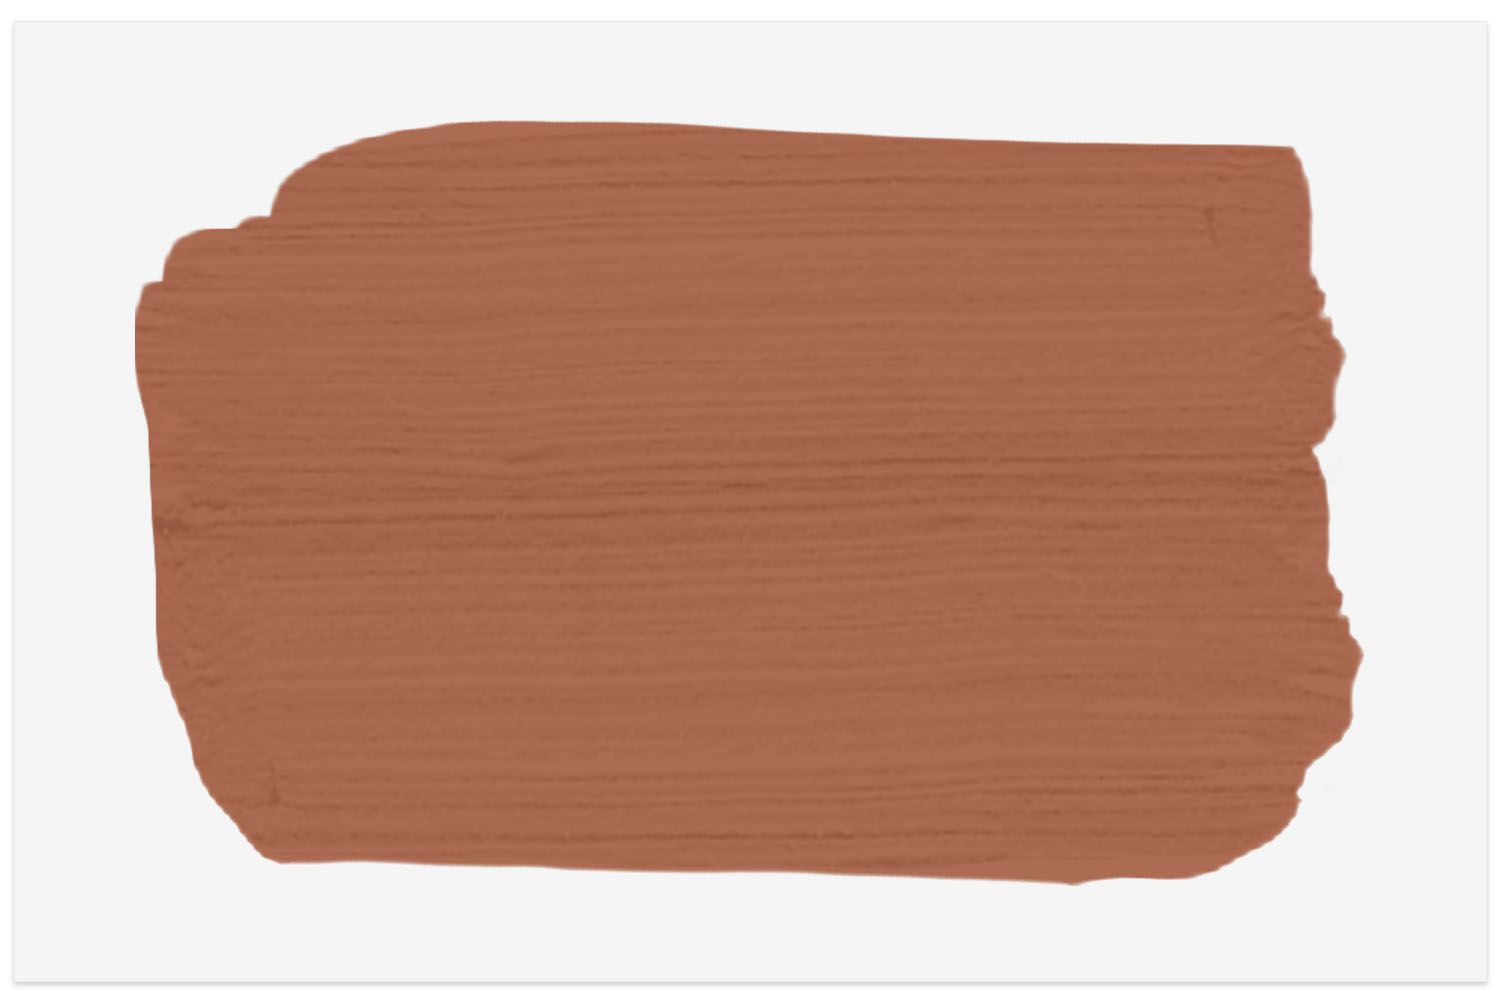 Paint swatch of Sherwin Williams Cavern Clay